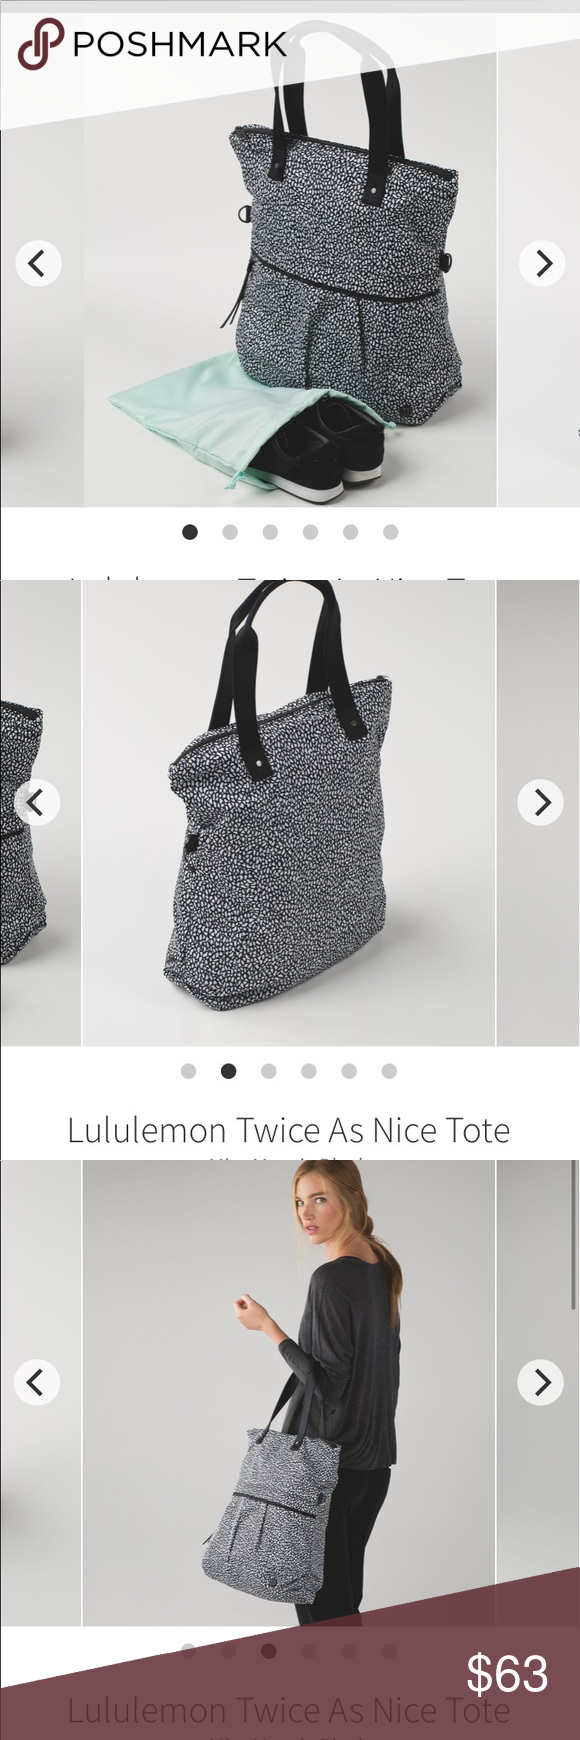 413481a8e0 Versatile bag with lots of room & pockets for all your stuff! Handles and  shoulder strap. lululemon athletica Bags Totes. Lululemon Twice as Nice ...